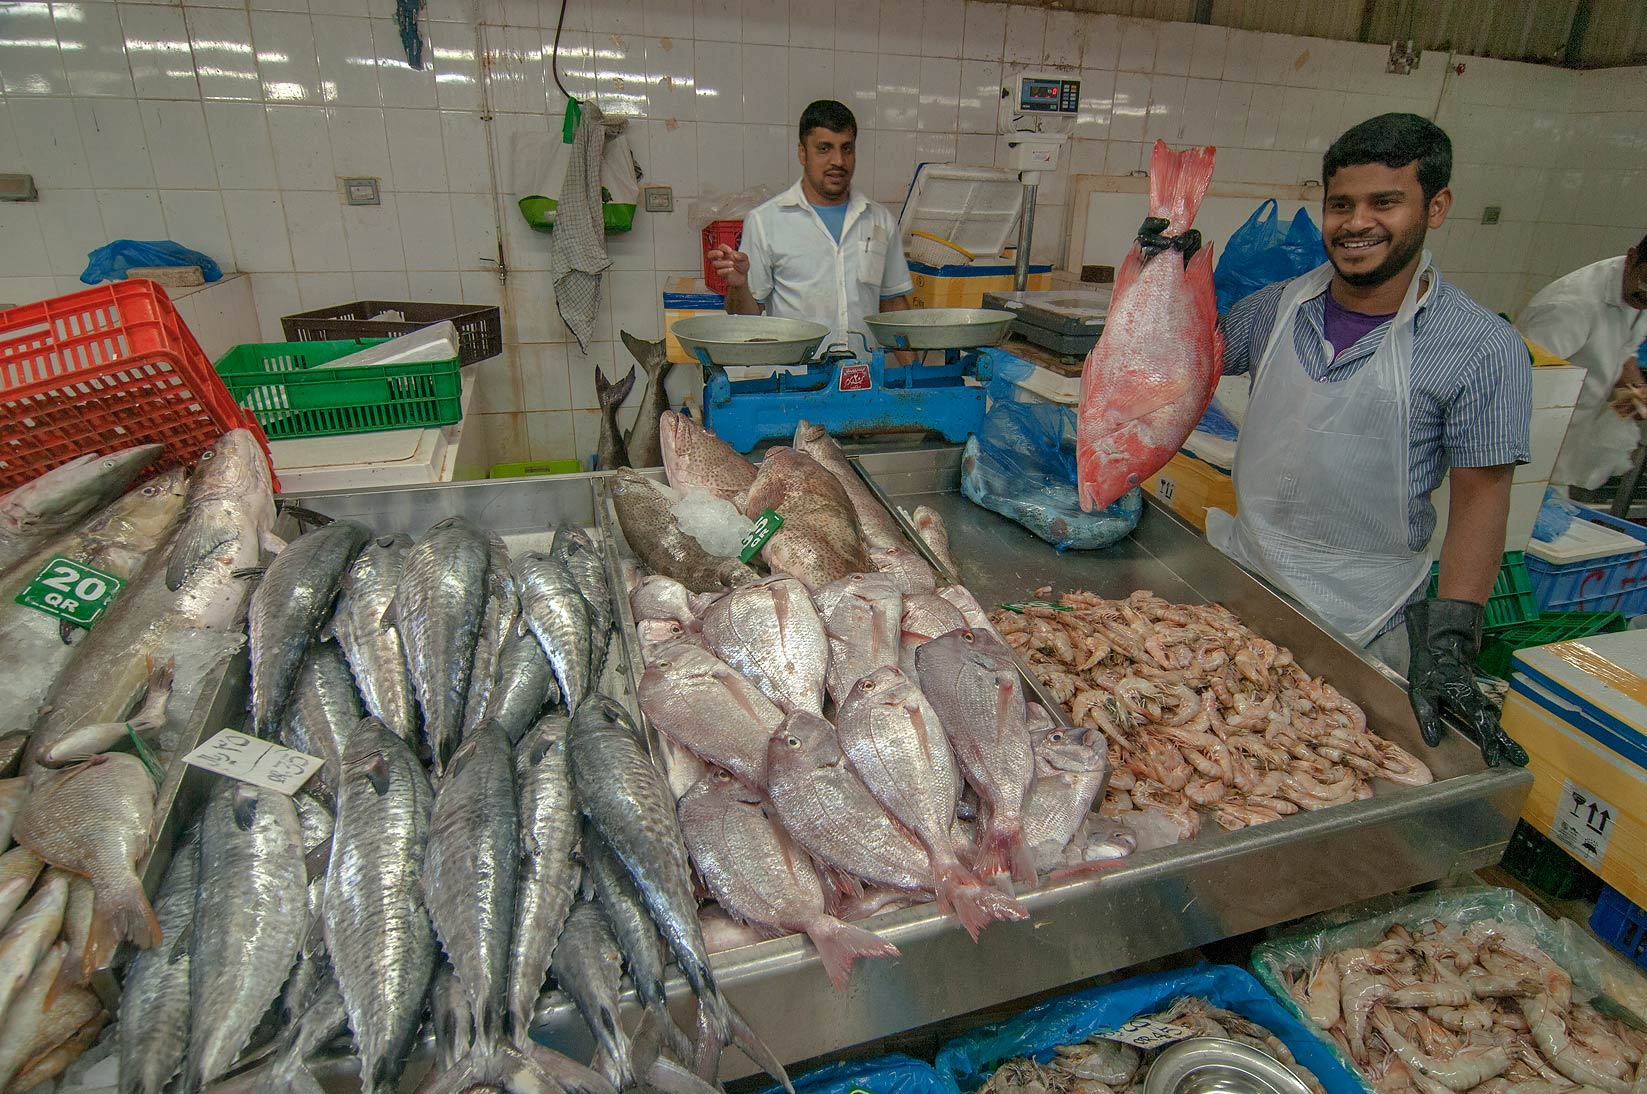 Sellers in Central Fish Market, Abu Hamour area. Doha, Qatar